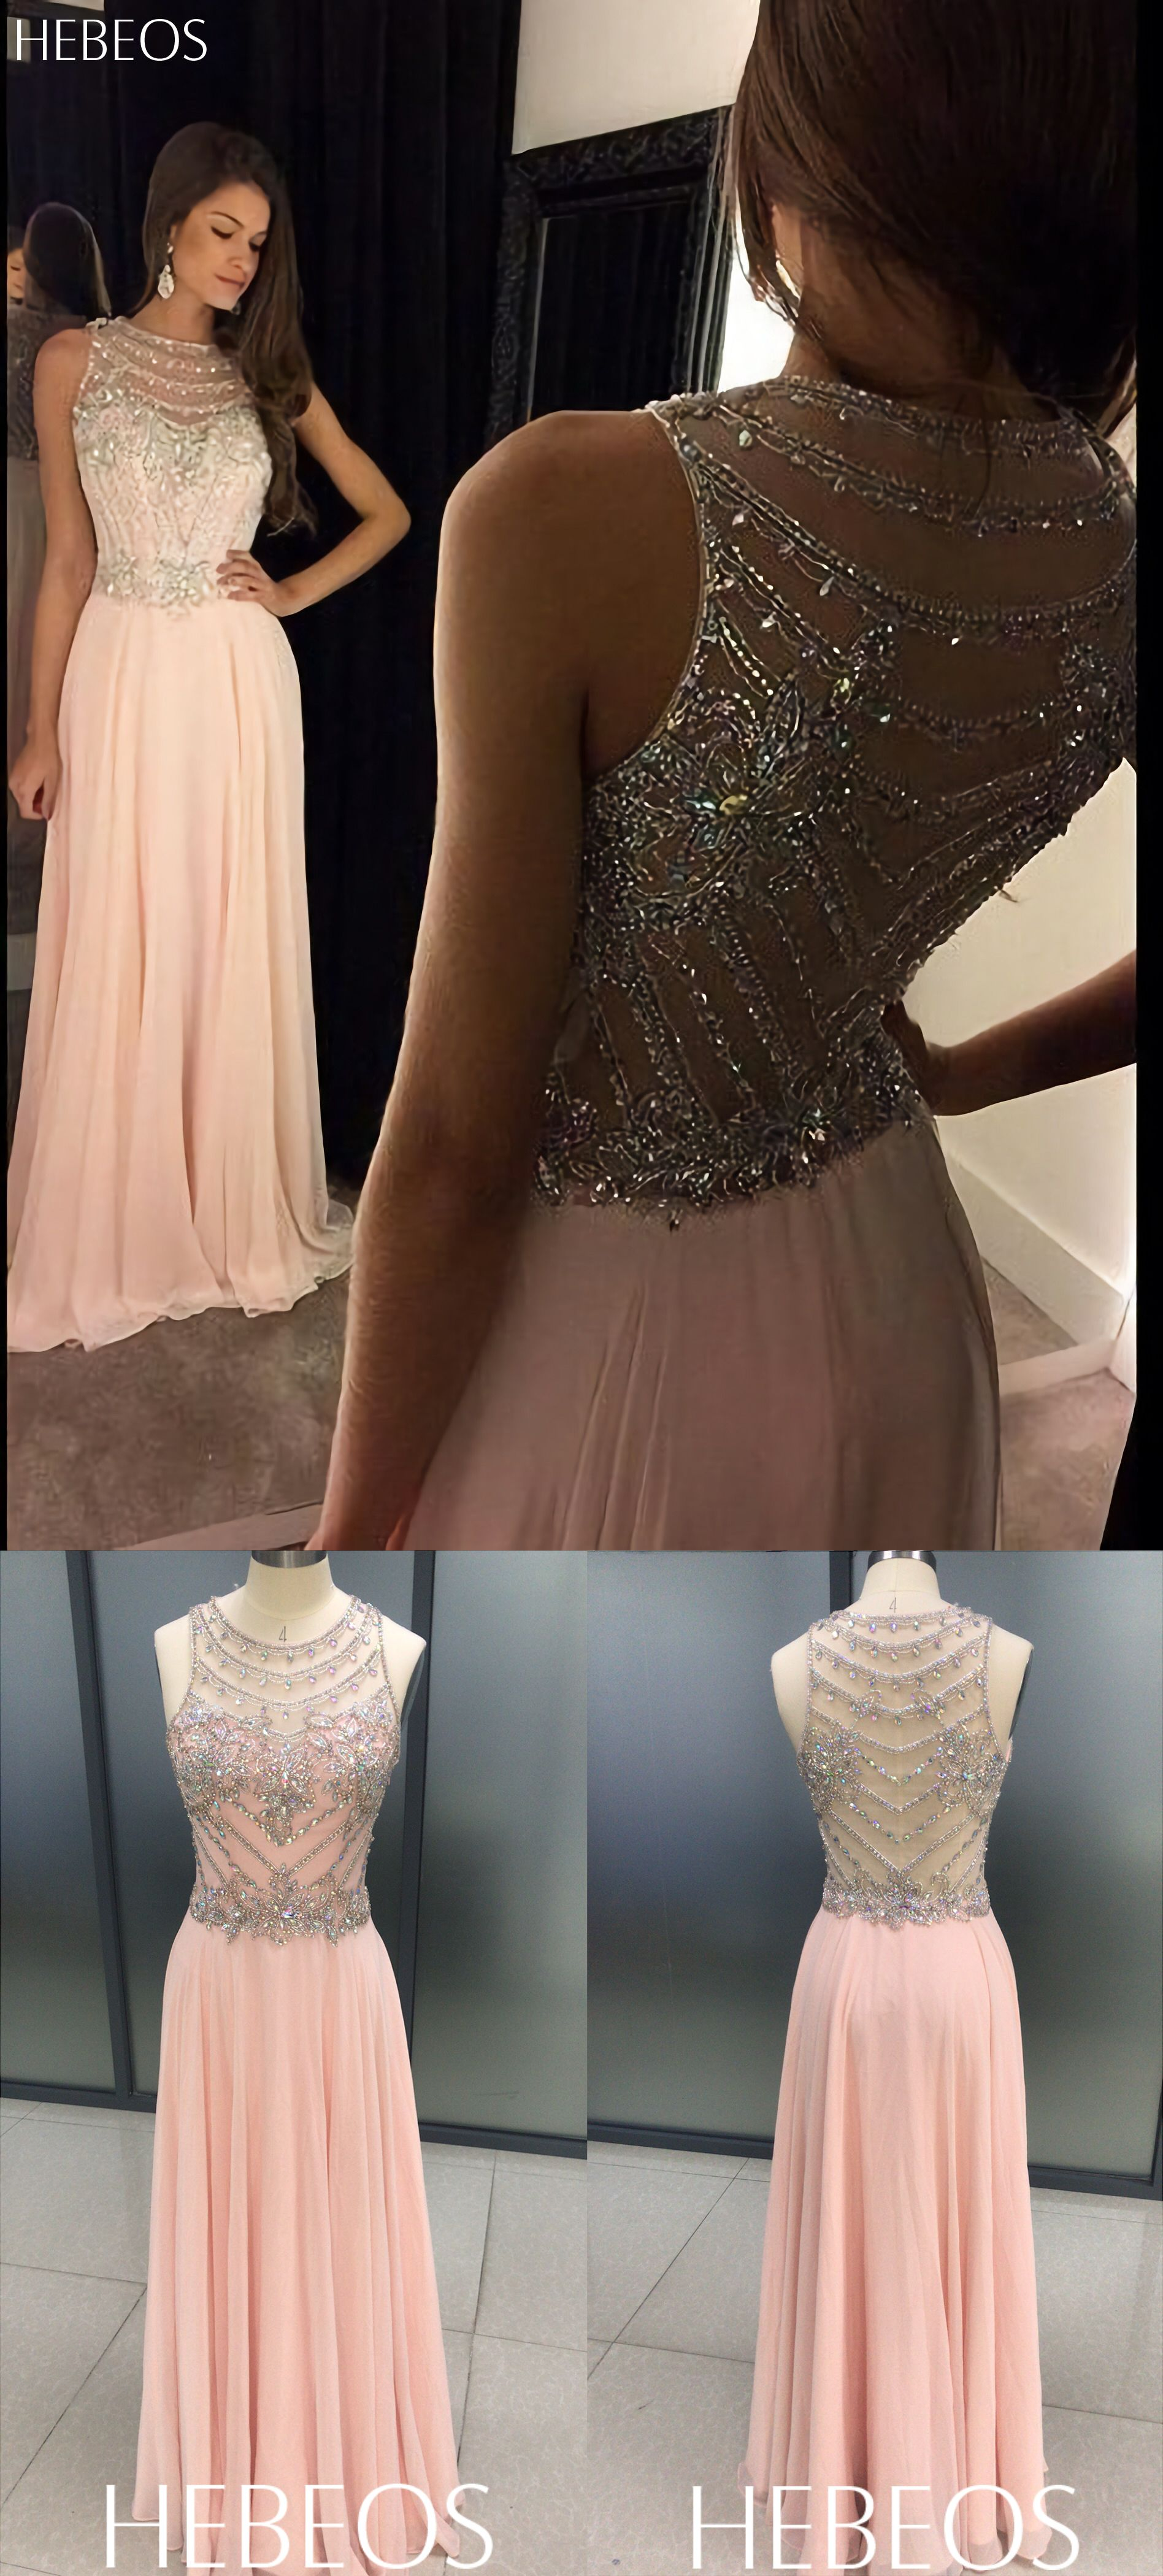 Hebeos aline scoop chiffon pink long prom dresses prom